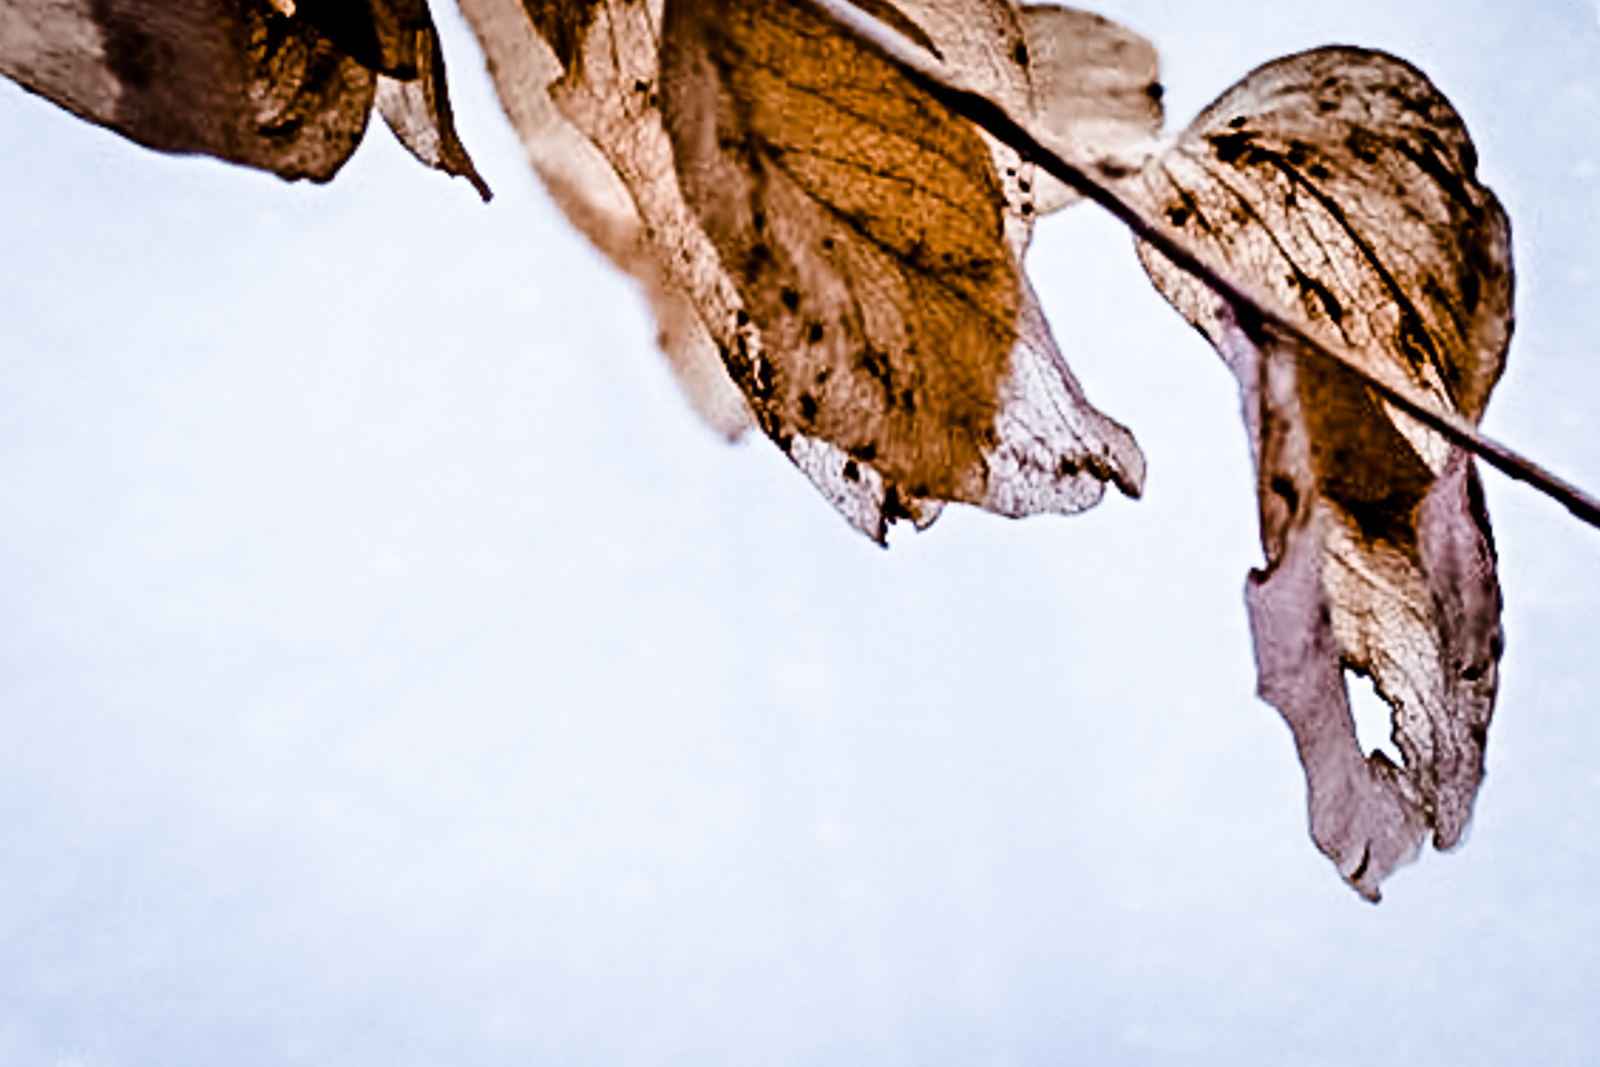 hedy bach images - sun leaves -2_